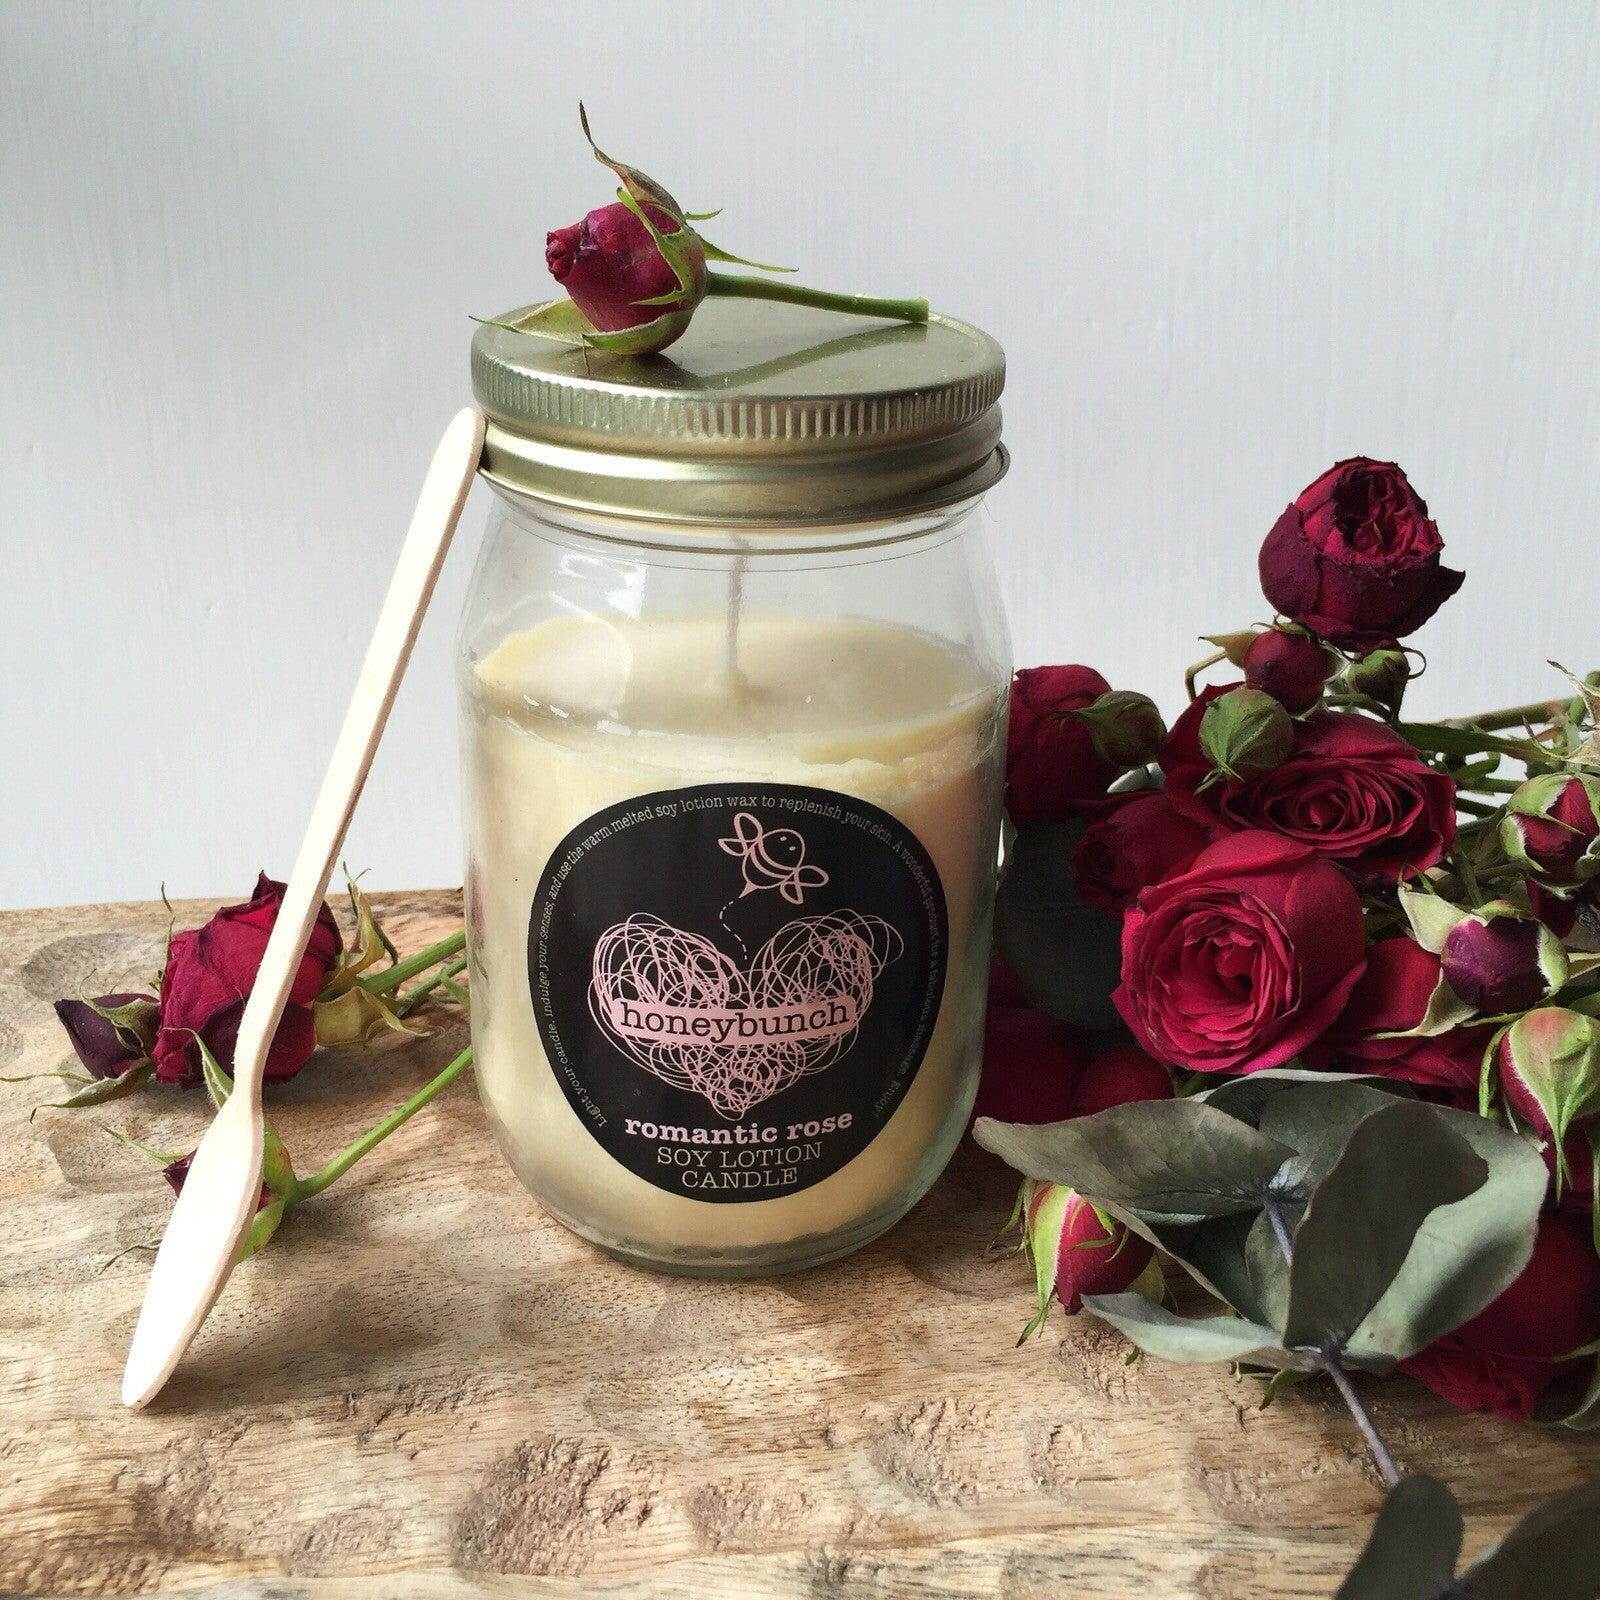 romantic rose soy lotion candle